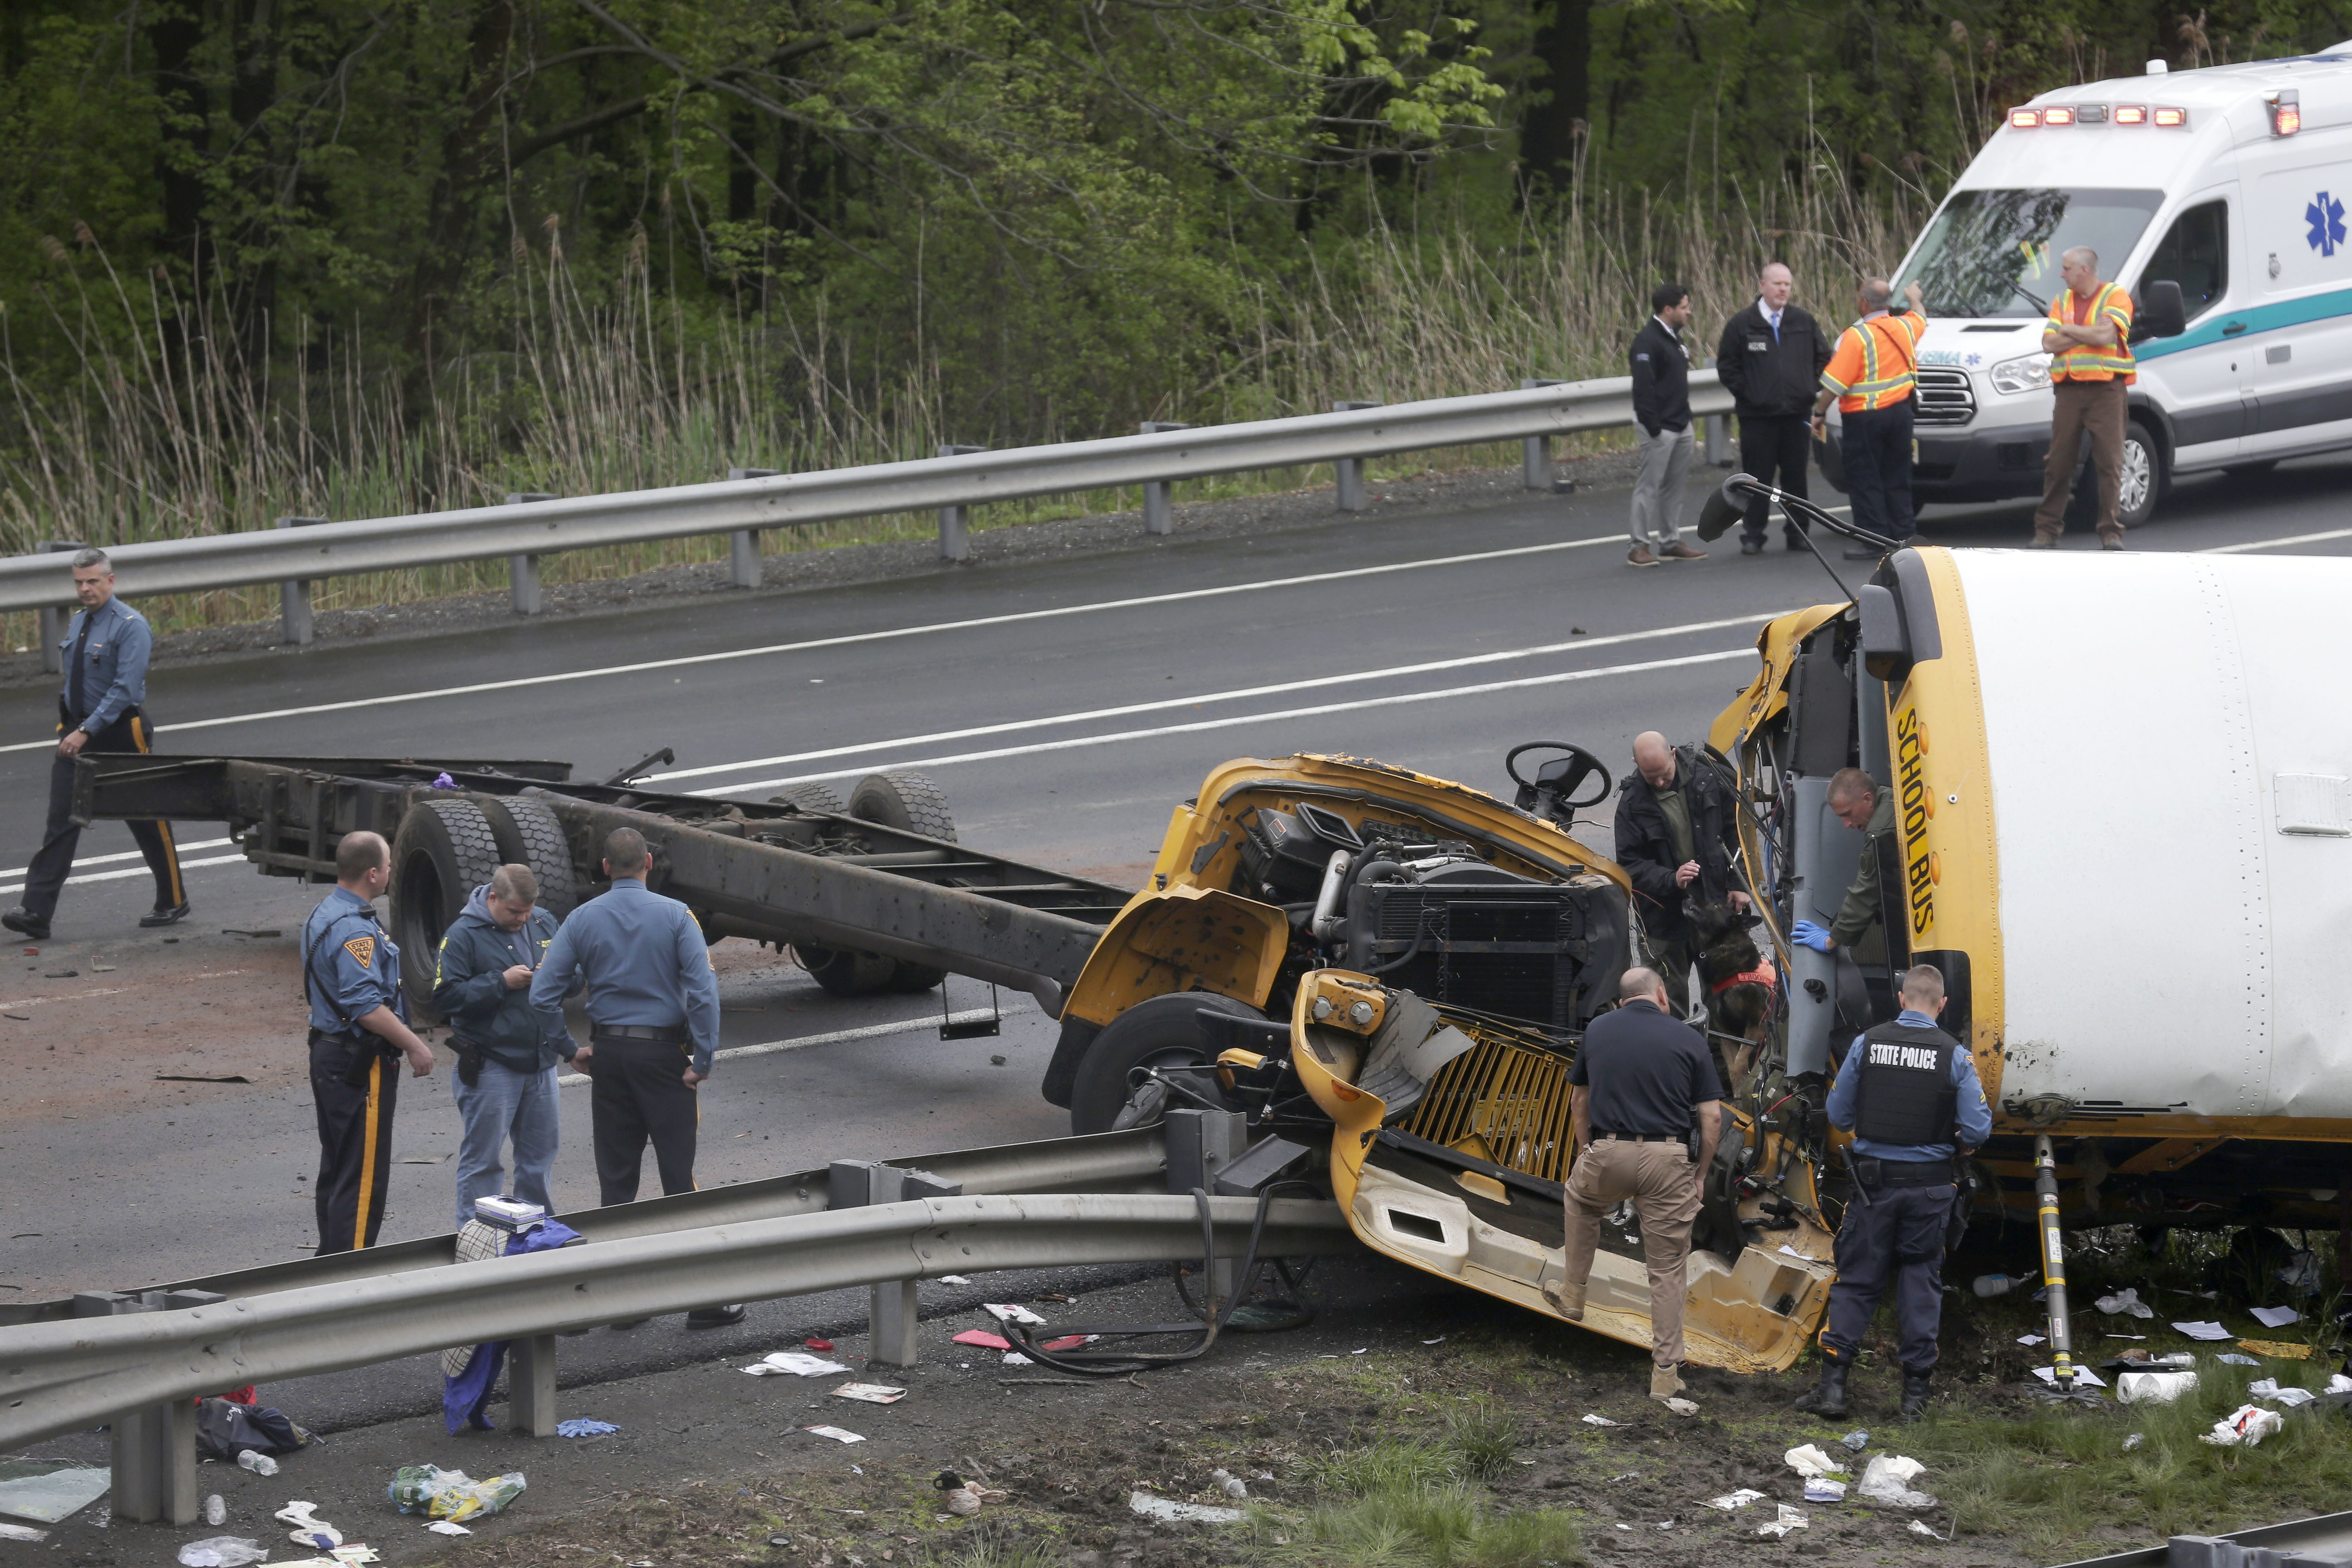 <div class='meta'><div class='origin-logo' data-origin='none'></div><span class='caption-text' data-credit='AP Photo/Seth Wenig'>Emergency personnel examine a school bus after it collided with a dump truck, injuring multiple people, on Interstate 80 in Mount Olive, N.J., Thursday, May 17, 2018.</span></div>